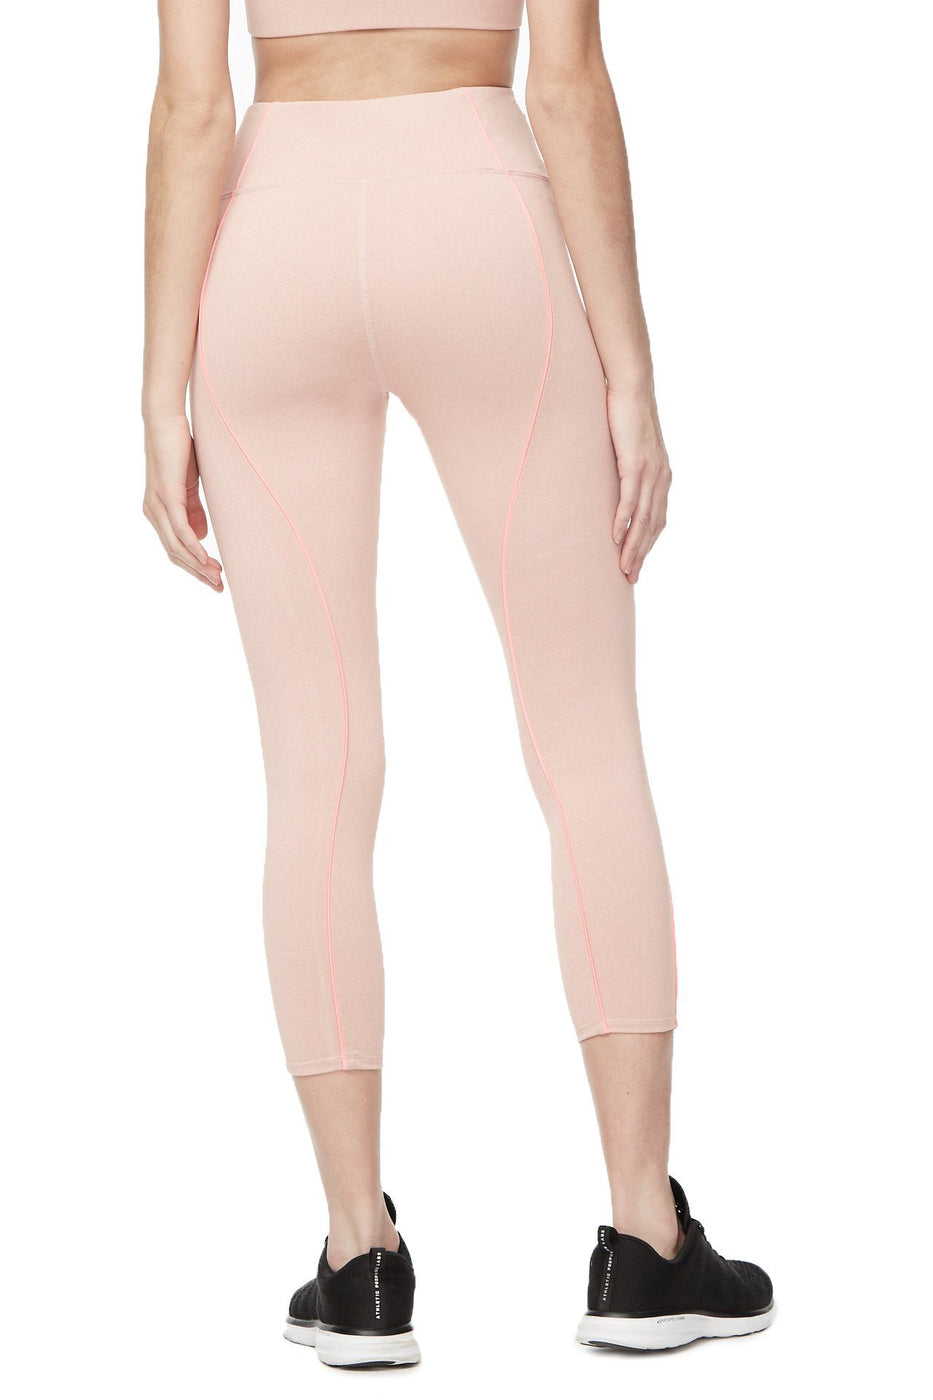 THE ELECTRIC FEEL 7/8 LEGGING | HEATHERED PINK001